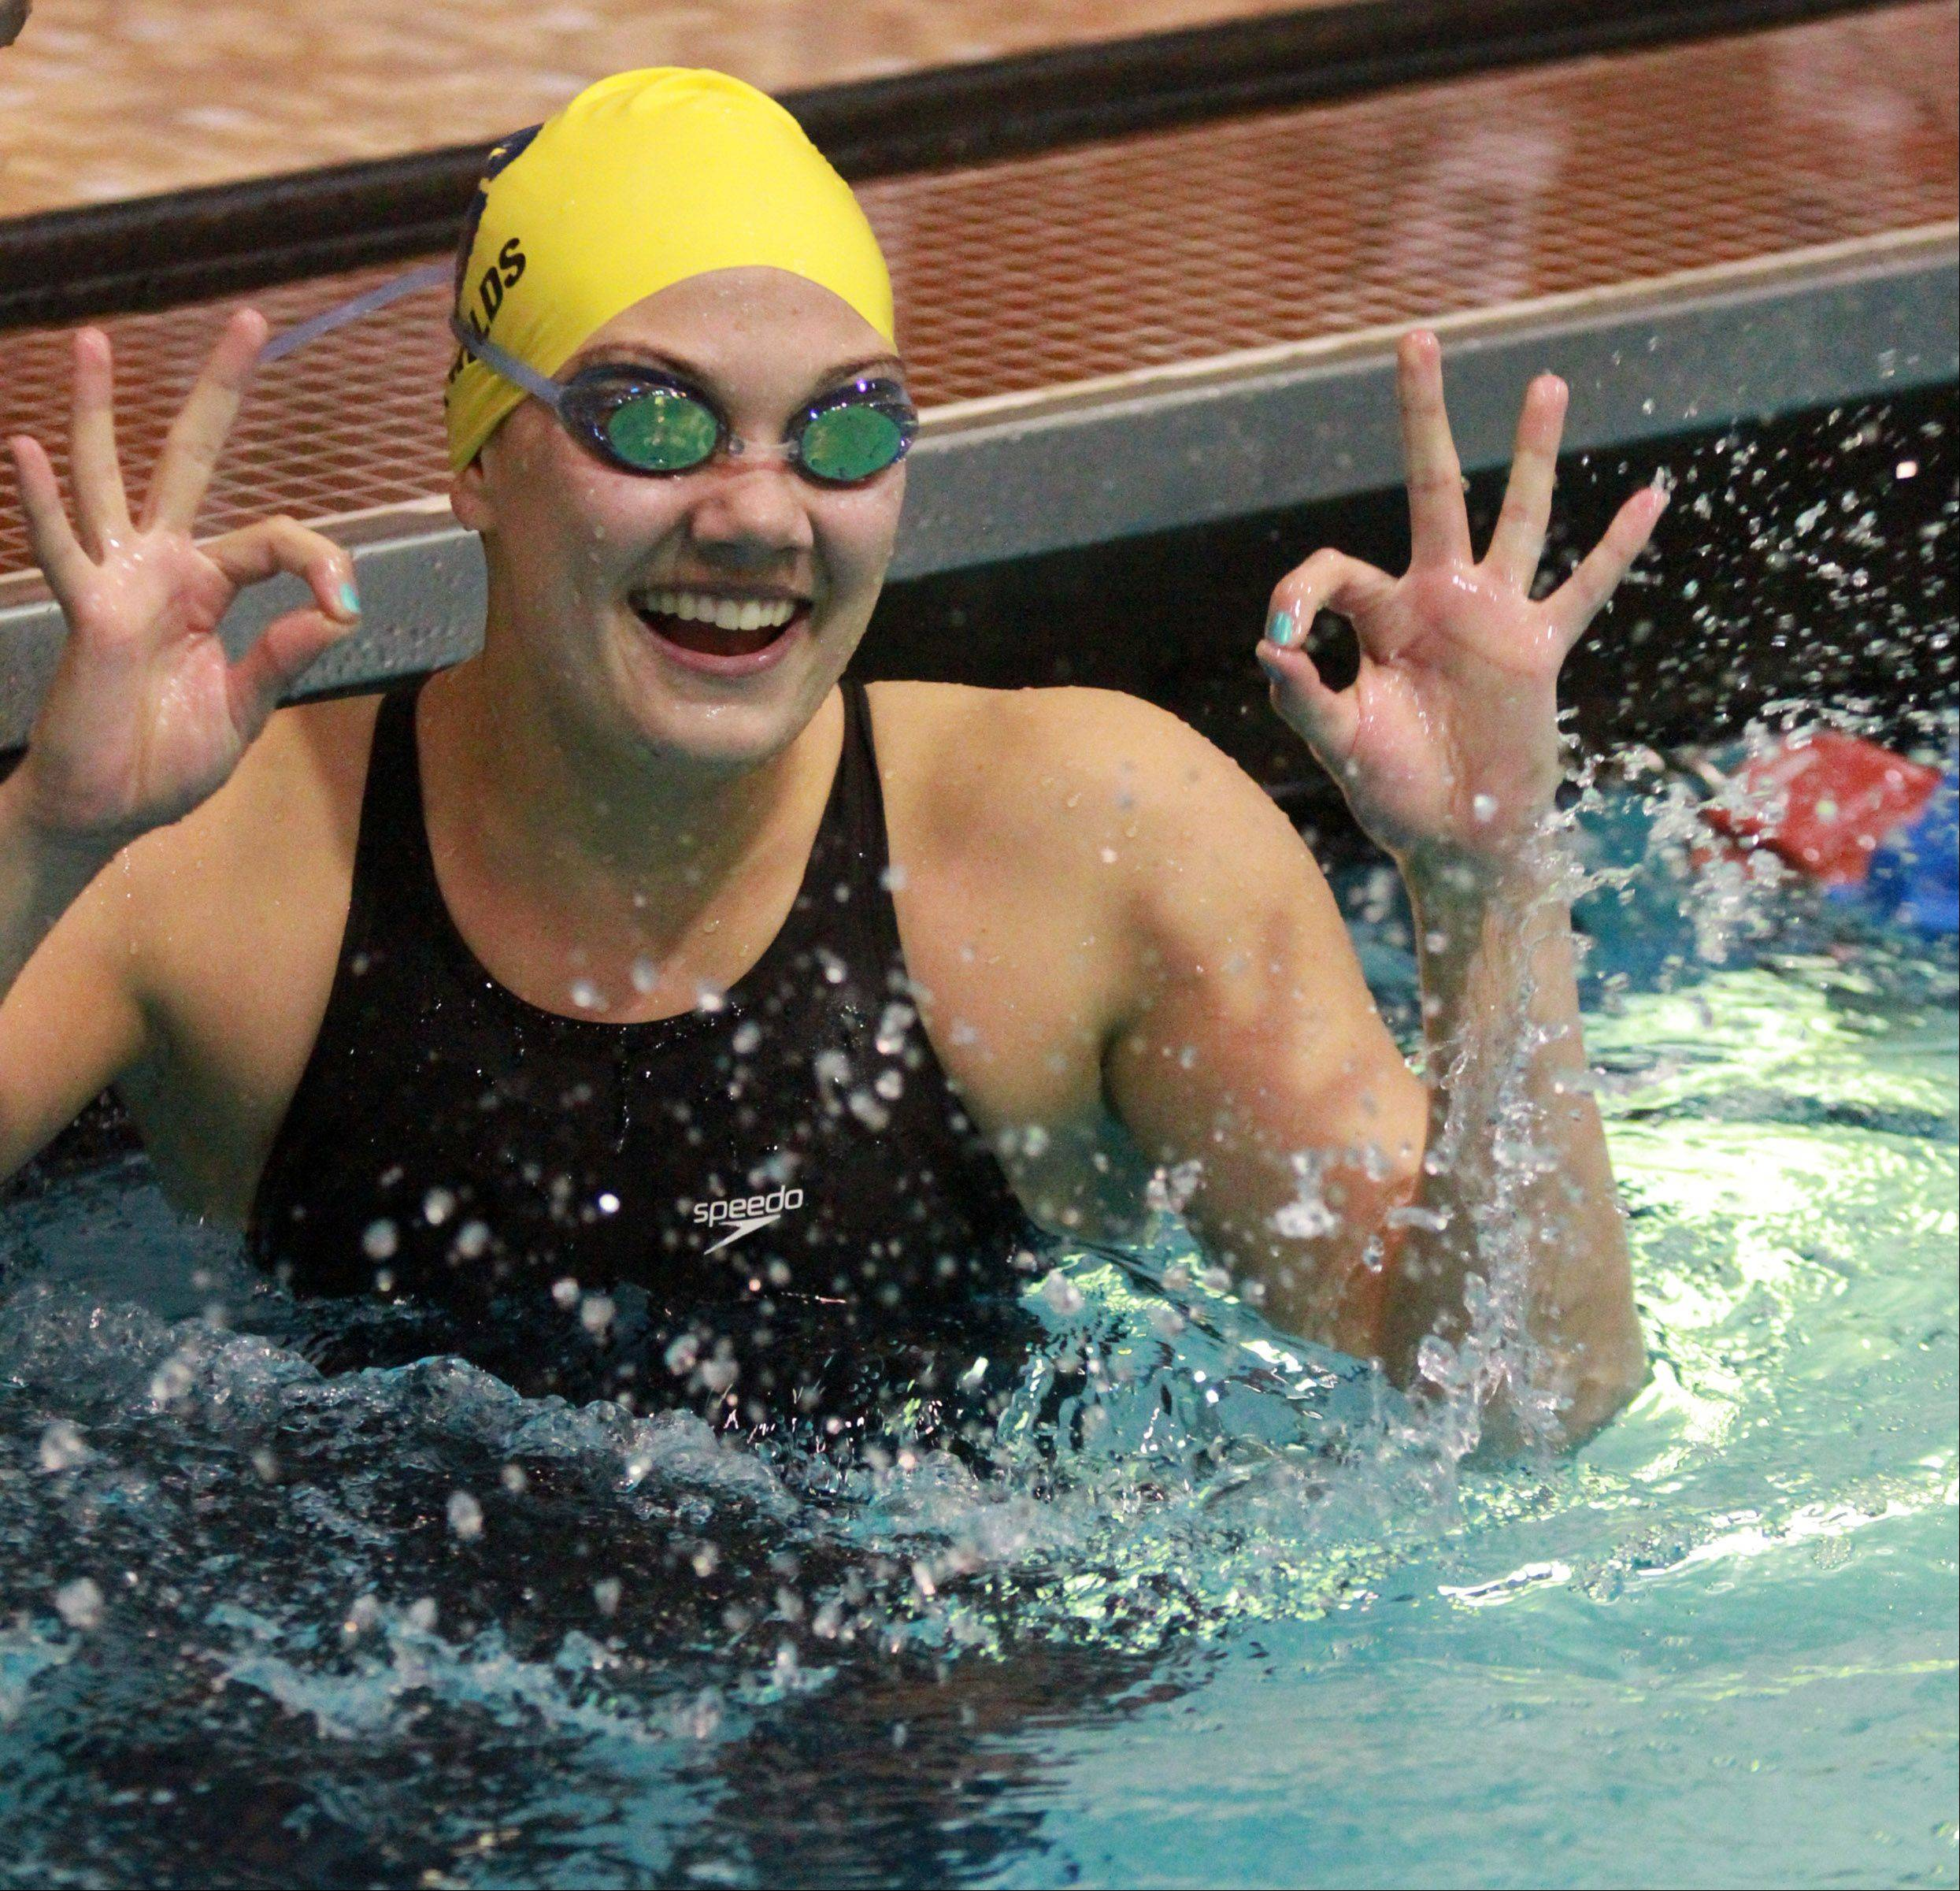 Neuqua Valley�s Megan Childs turns towards fans and reacts to her team placing third in the 200-yard freestyle relay after Childs swam the last leg of the race at the IHSA state championships in Evanston on Saturday.